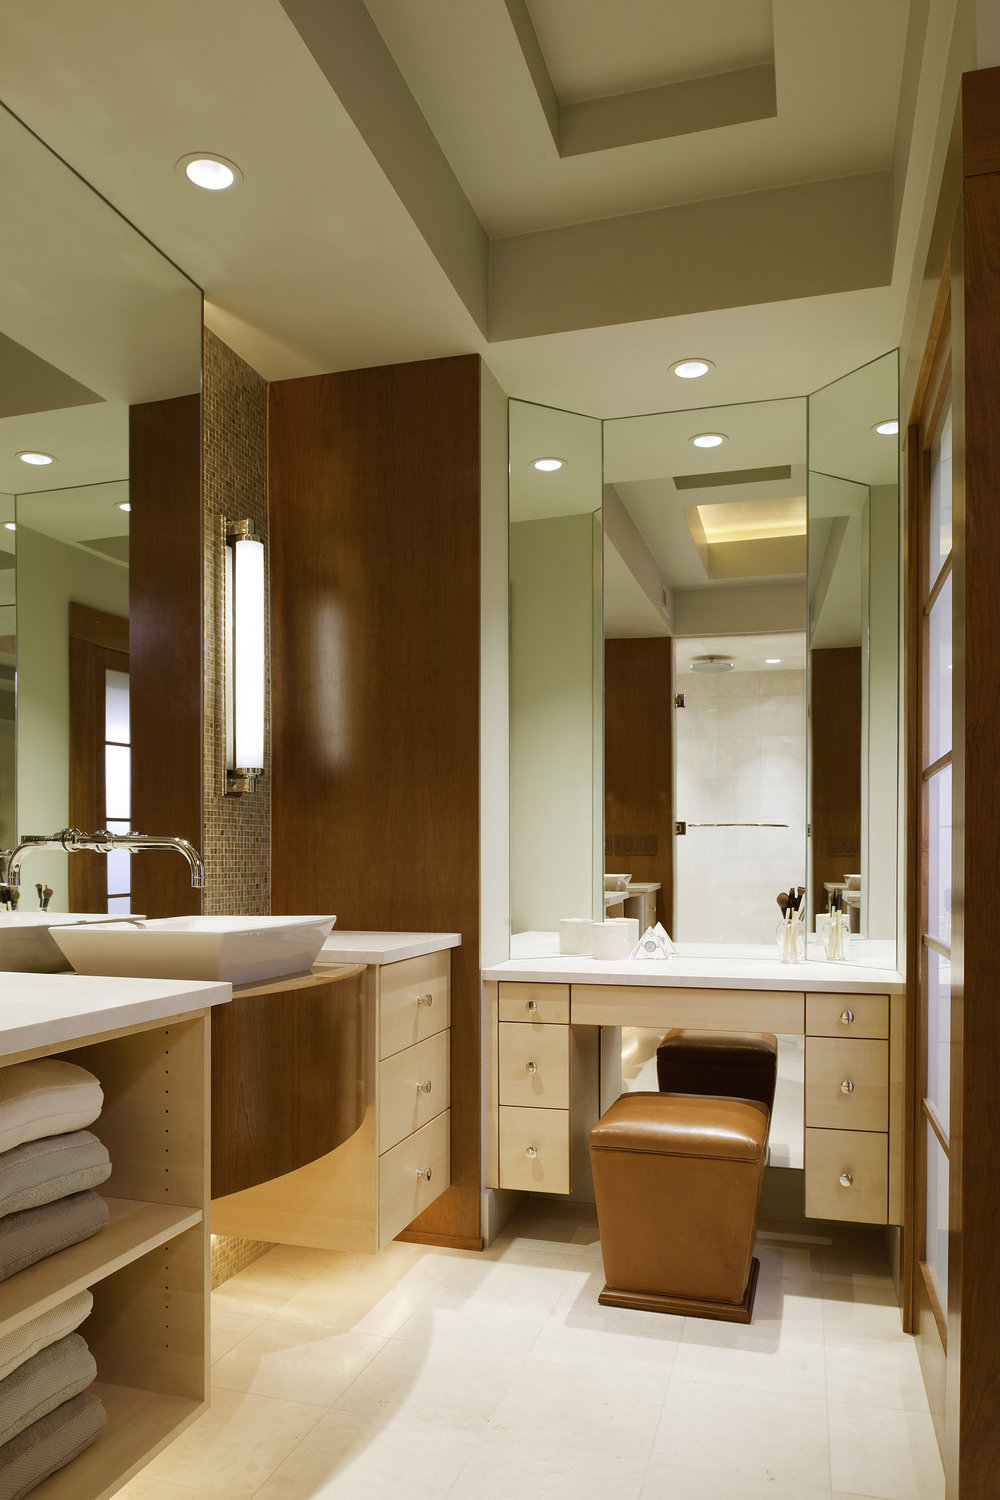 kitchen_bath_concepts_wholehome5_3.jpg